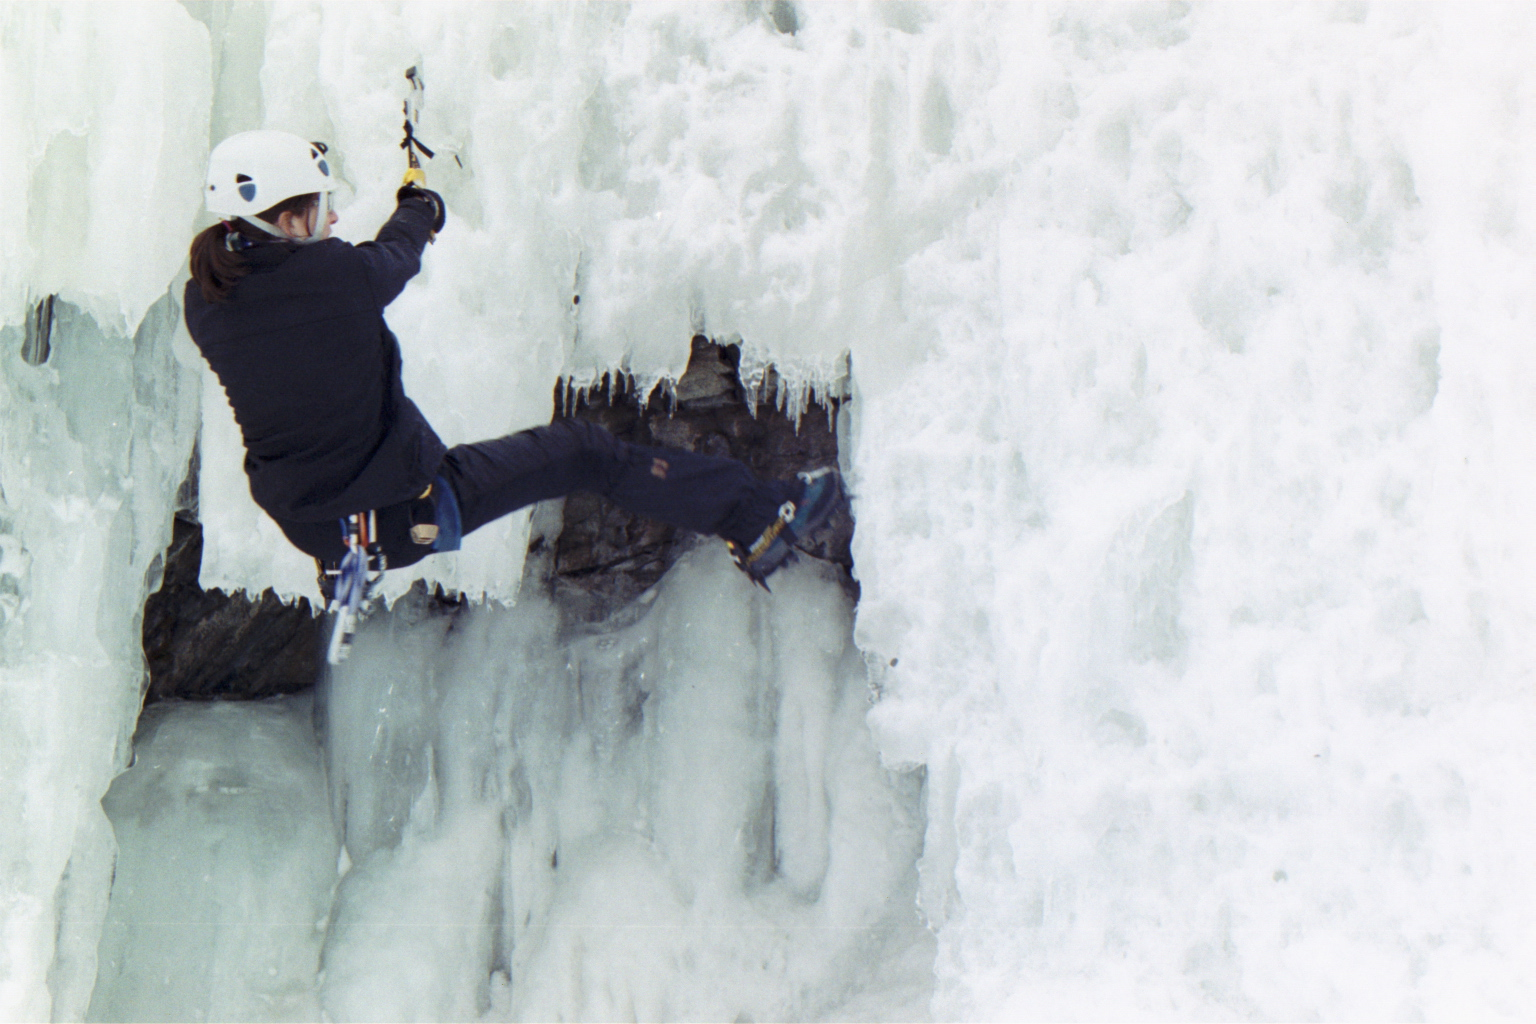 Ice Climbing | Doug's Mountain Getaw